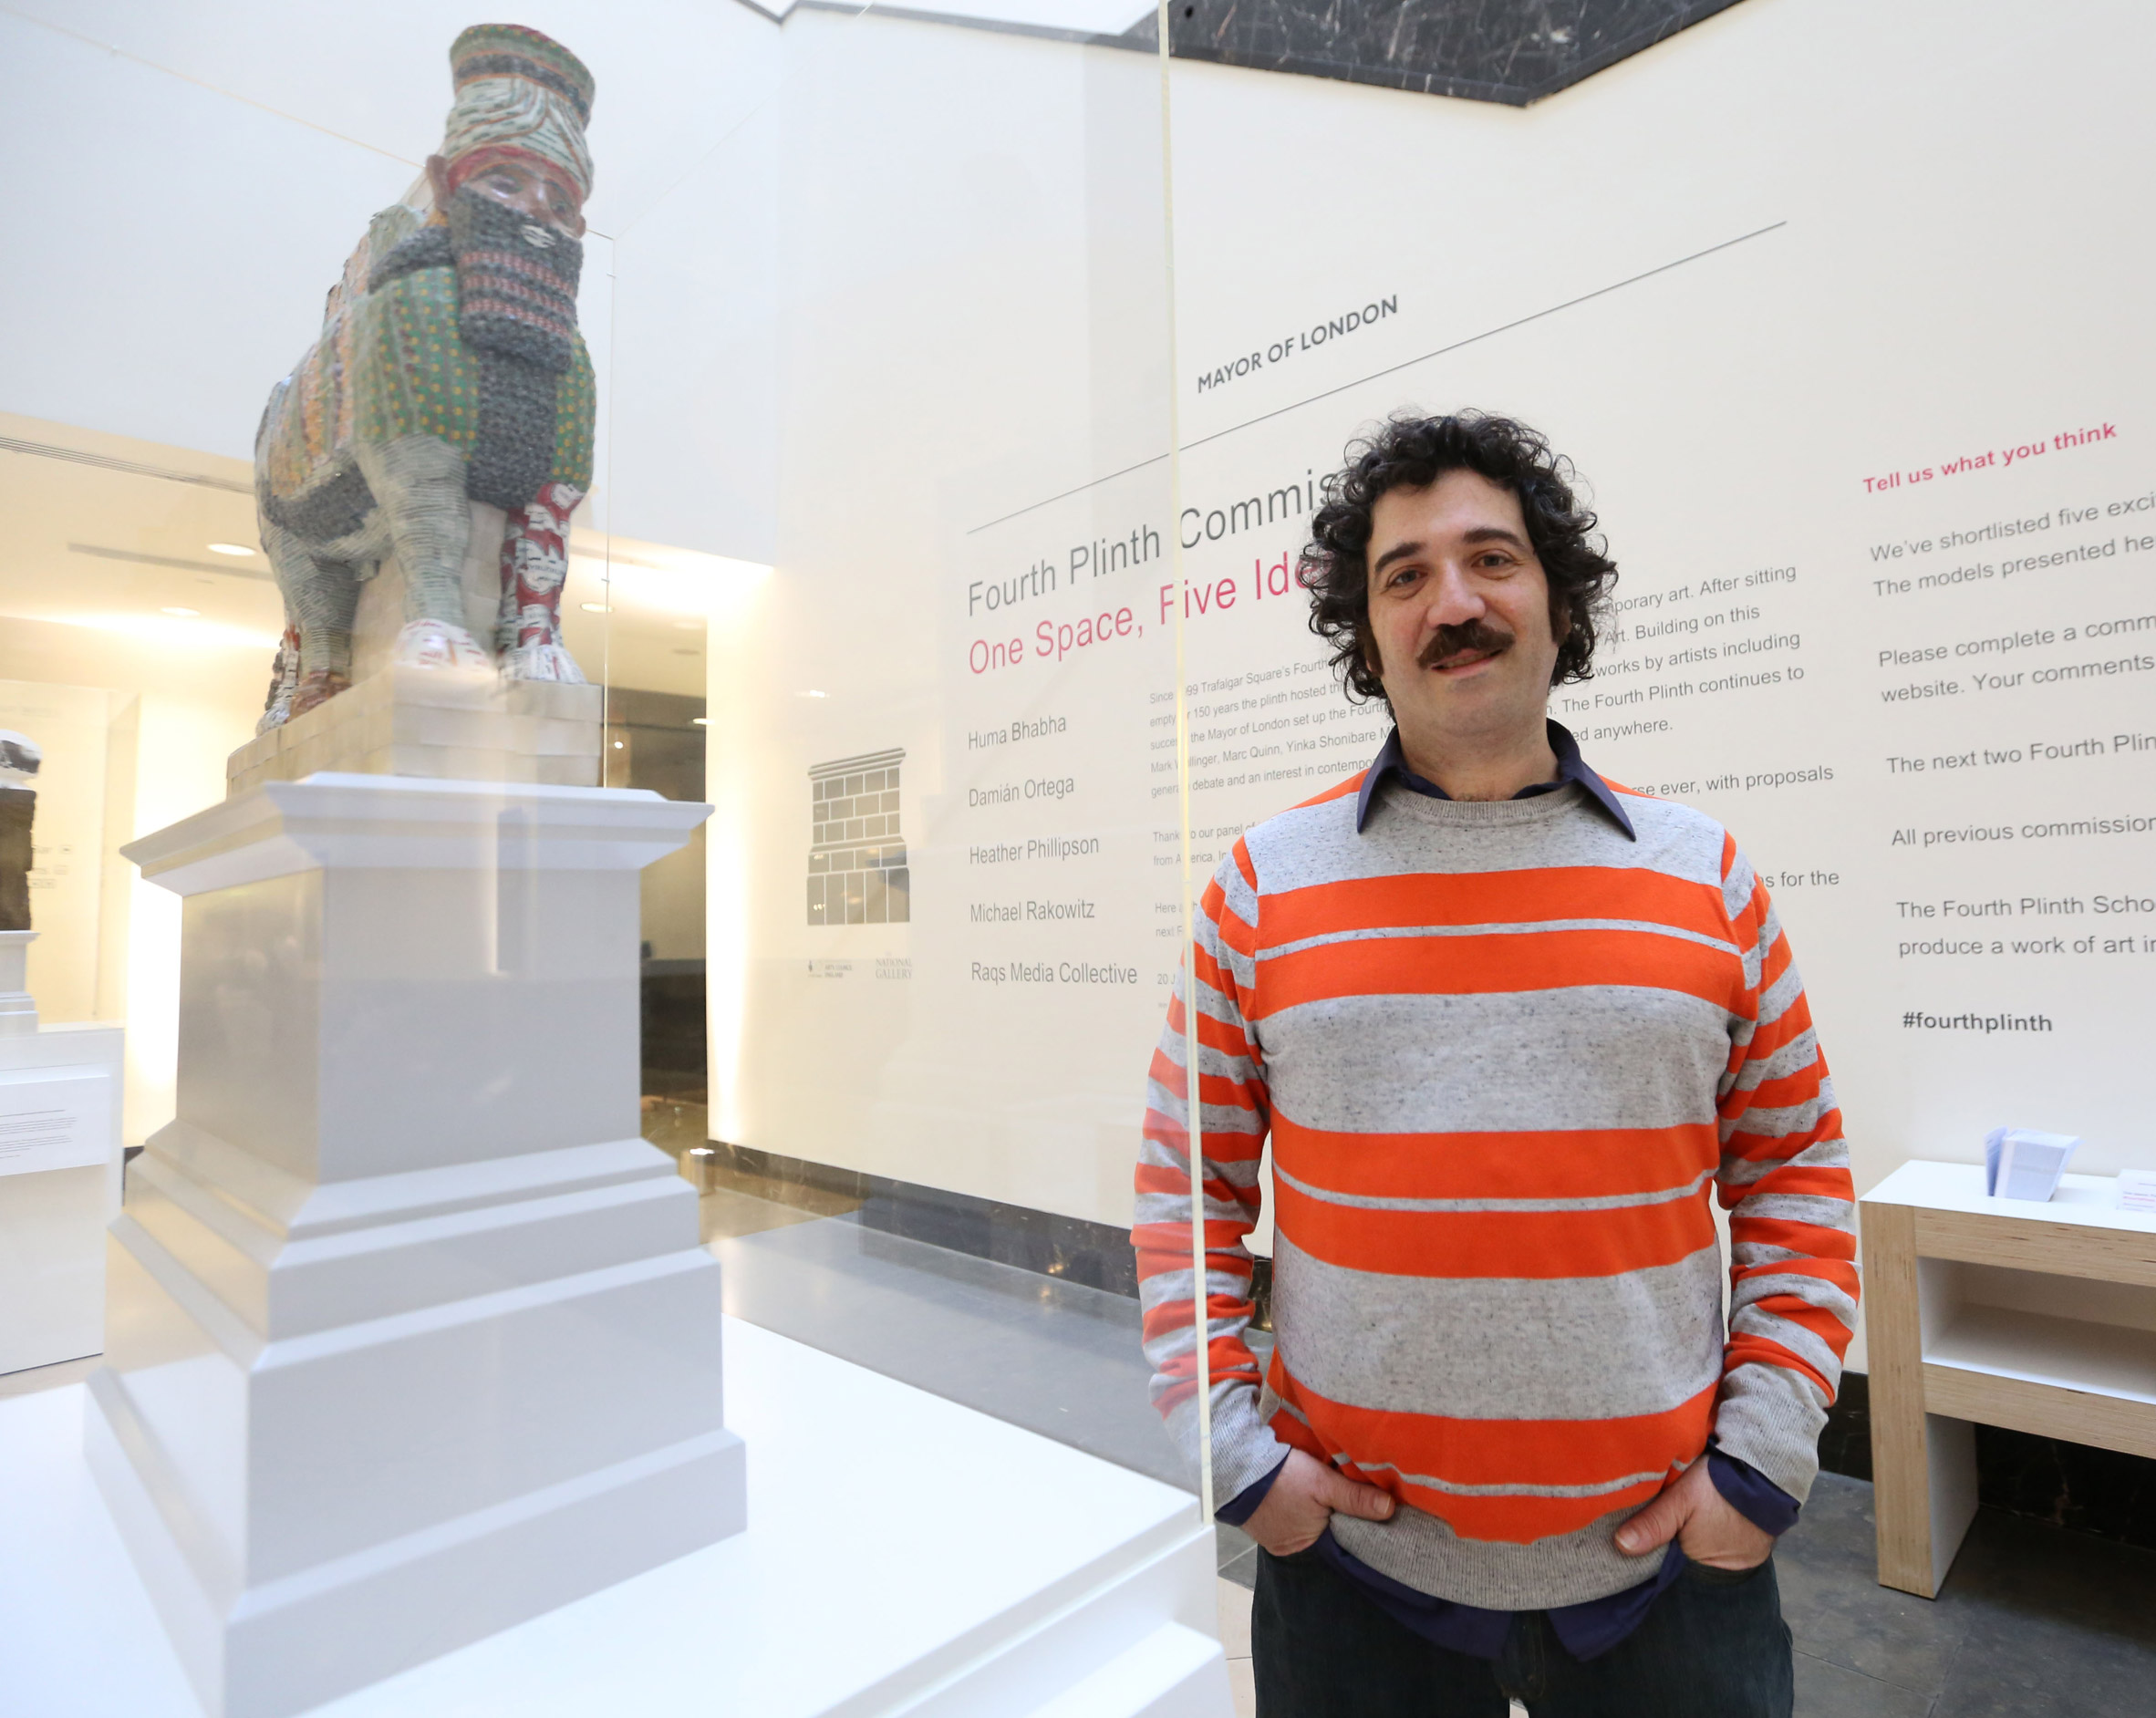 Replica of artefact destroyed by ISIS announced as London's next Fourth Plinth installation